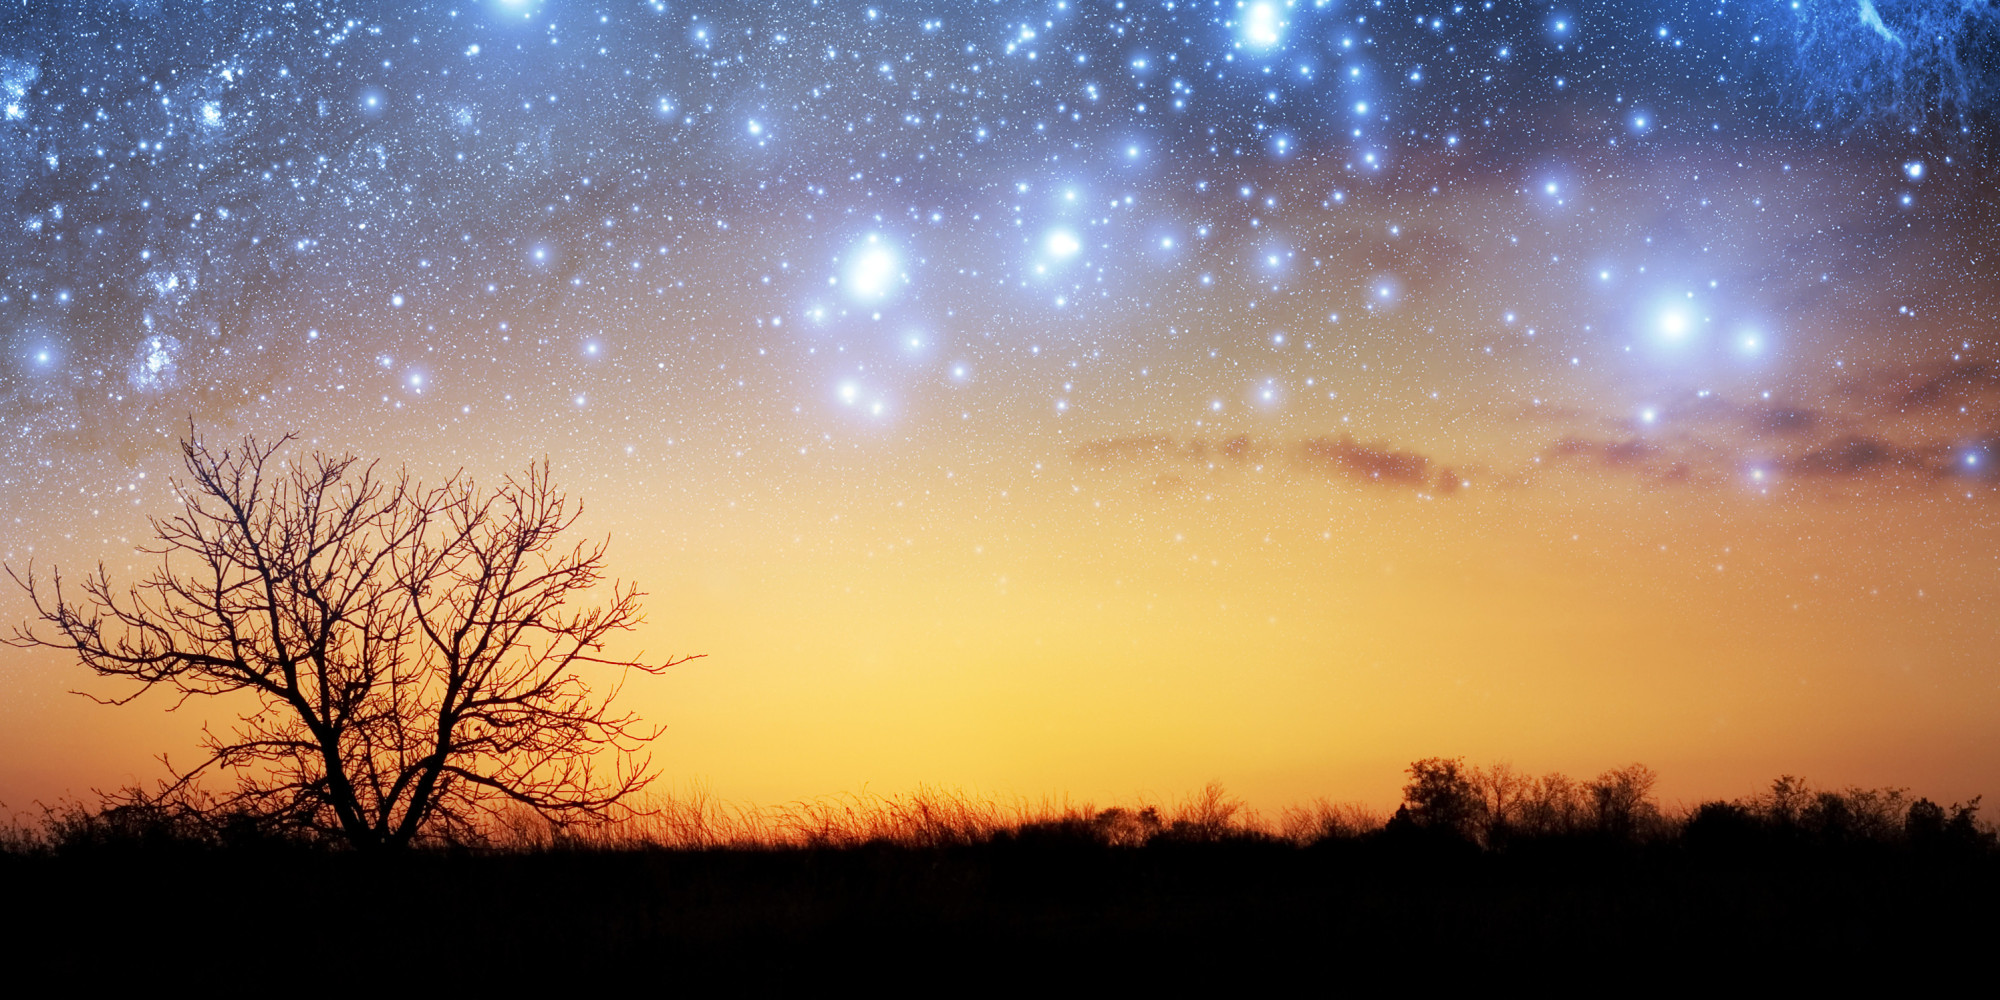 Falling Skies Wallpaper Featured Fifty Poetry Stars In The Early Morning Kirby